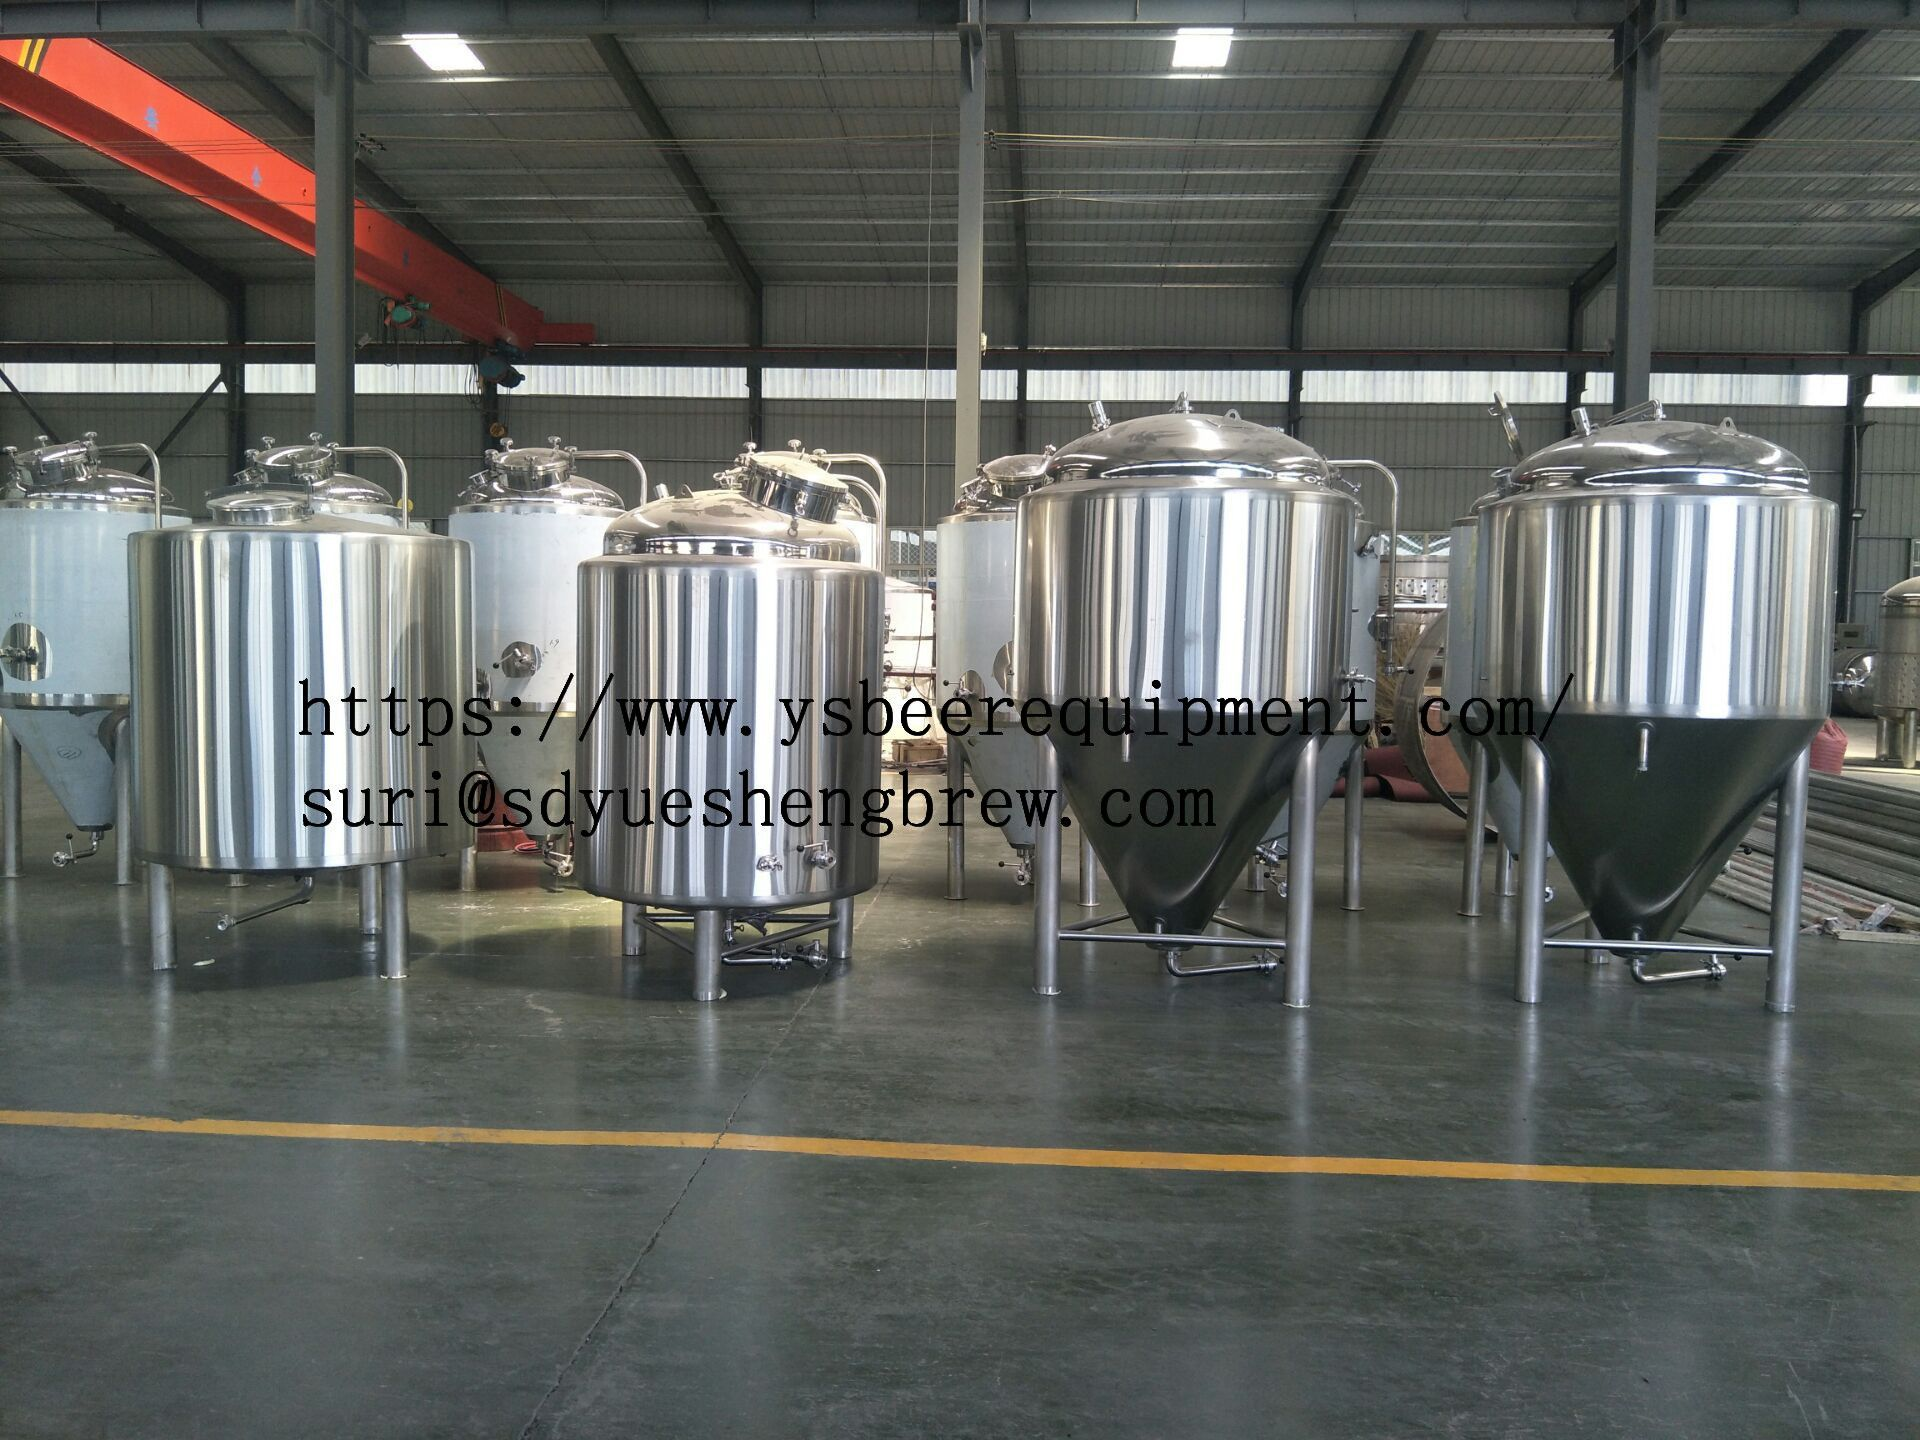 1000lbrewery Brewhousesystem Brewingsystem Commercialbeerbrewingequipment Two Vessels Or Three Beer Brewing Equipment Brewing Equipment Beer Tanks